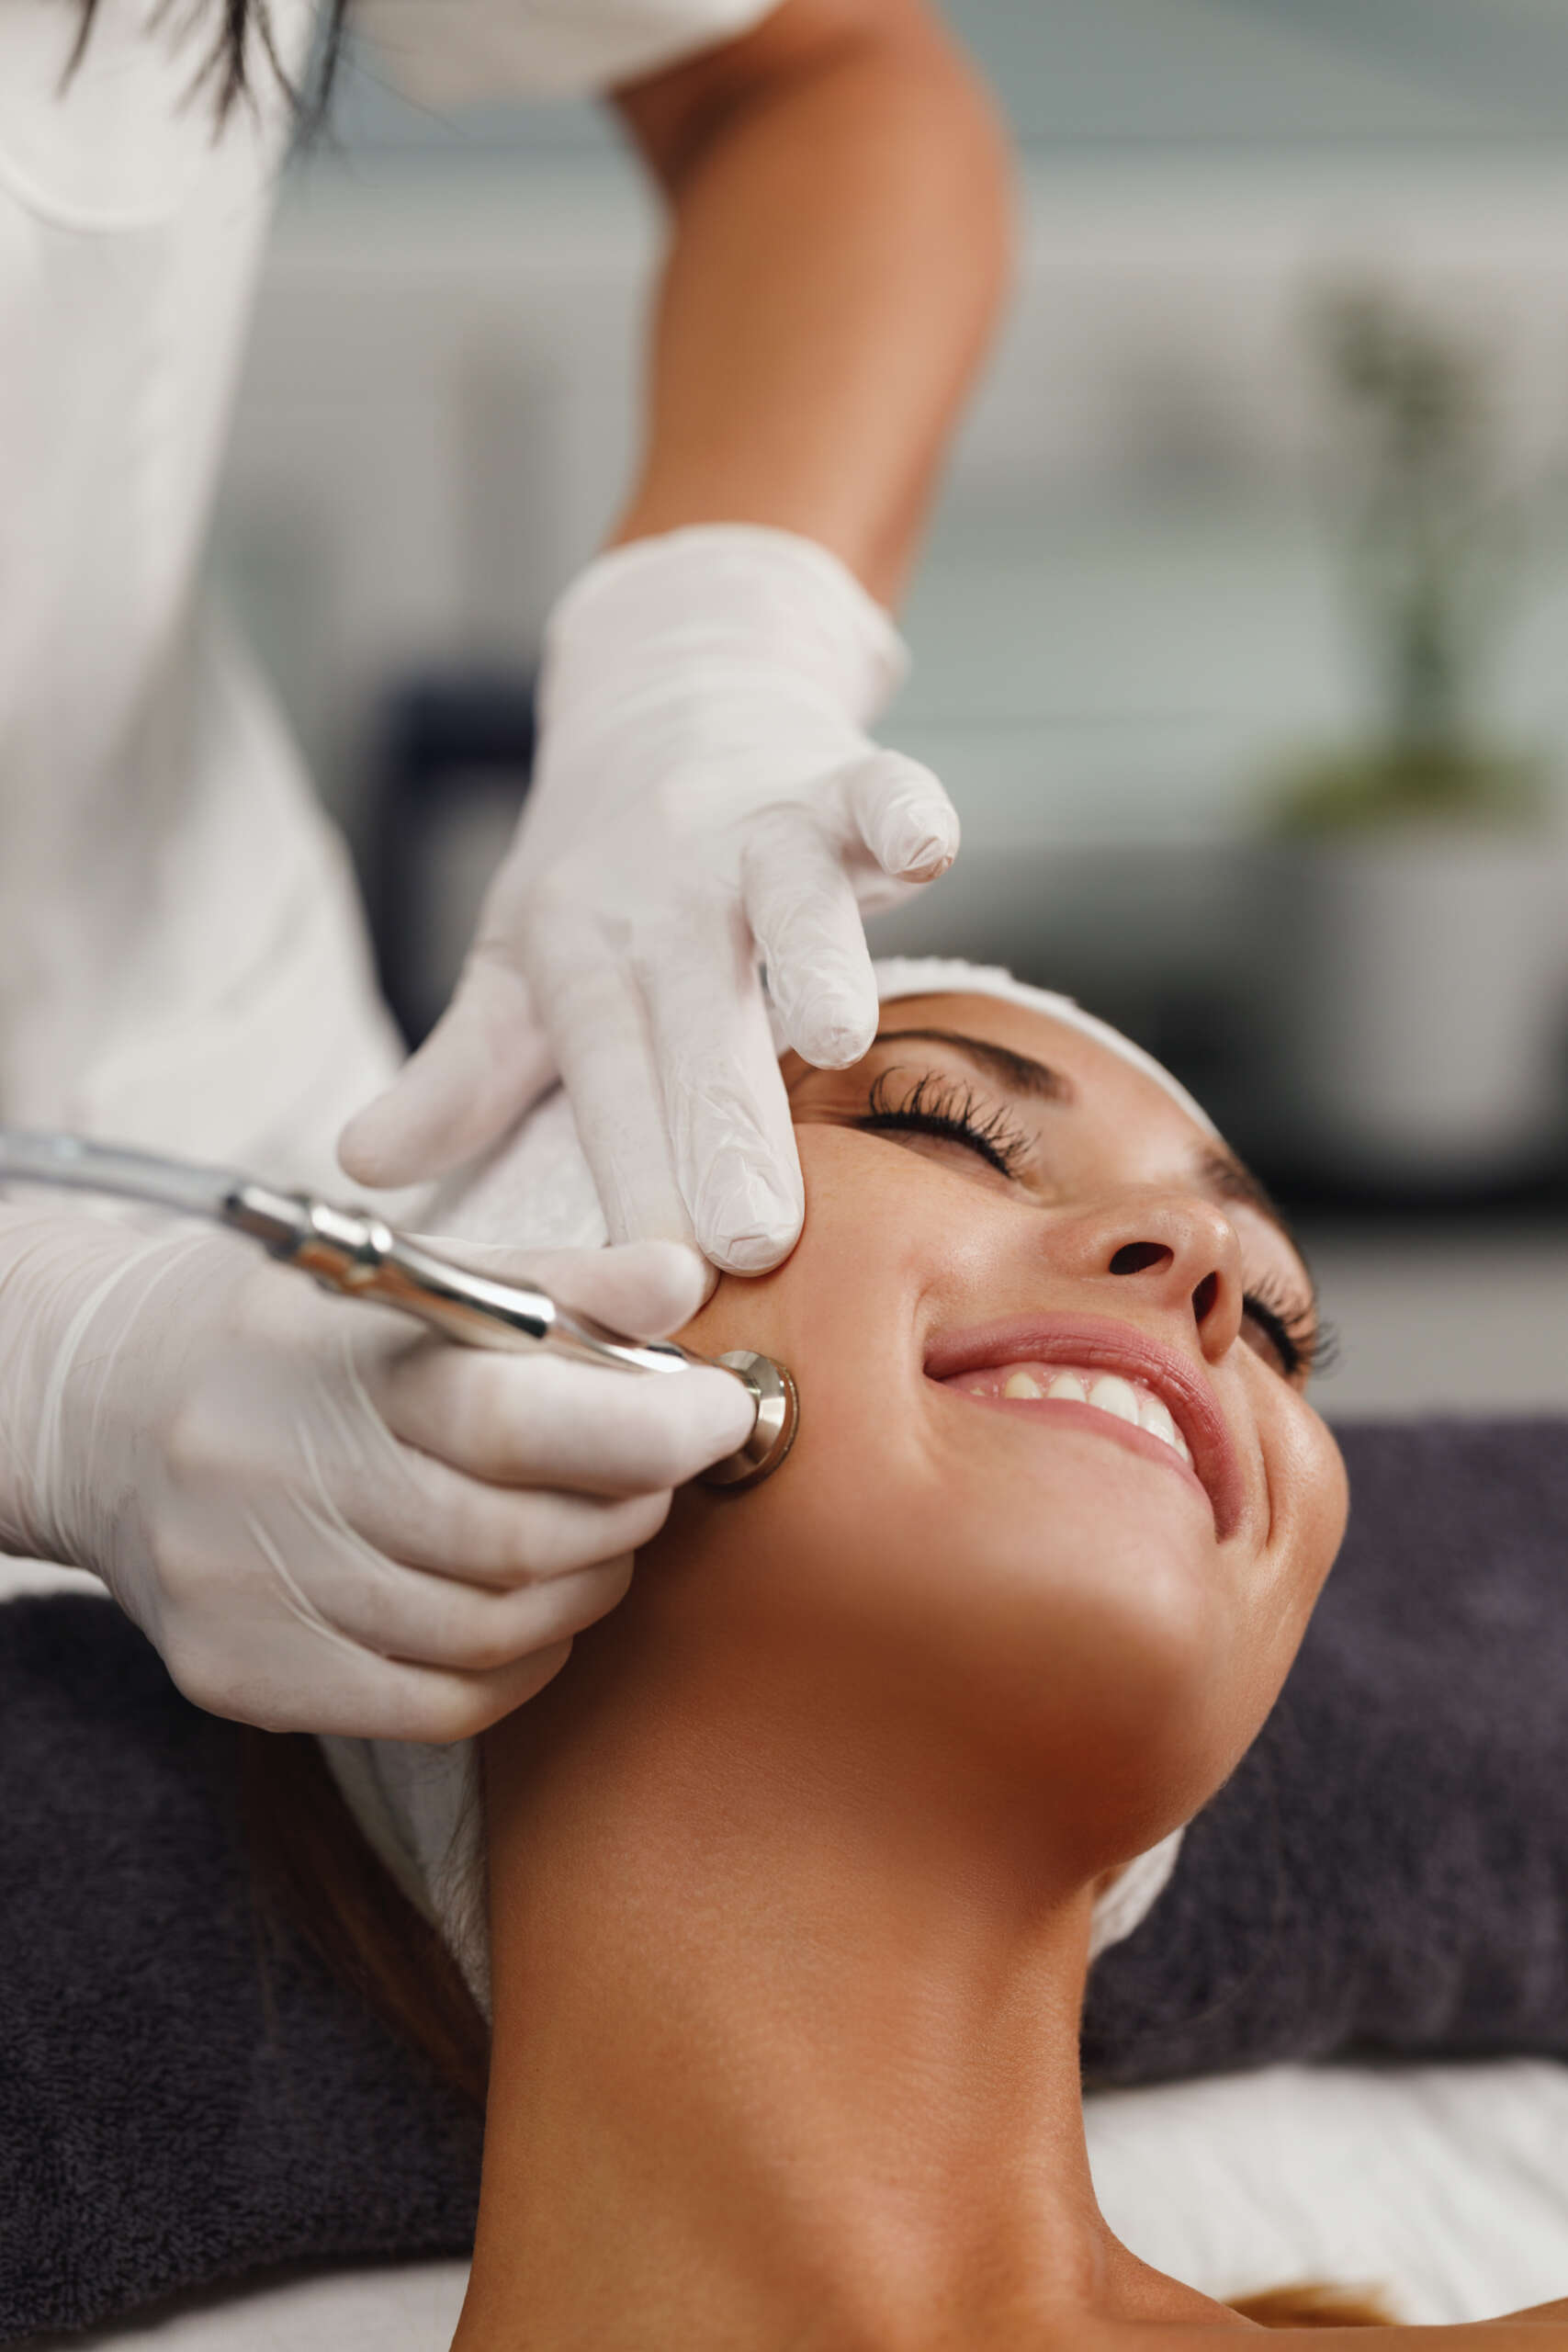 MICRODERMABRASION Facial Device Suppliers